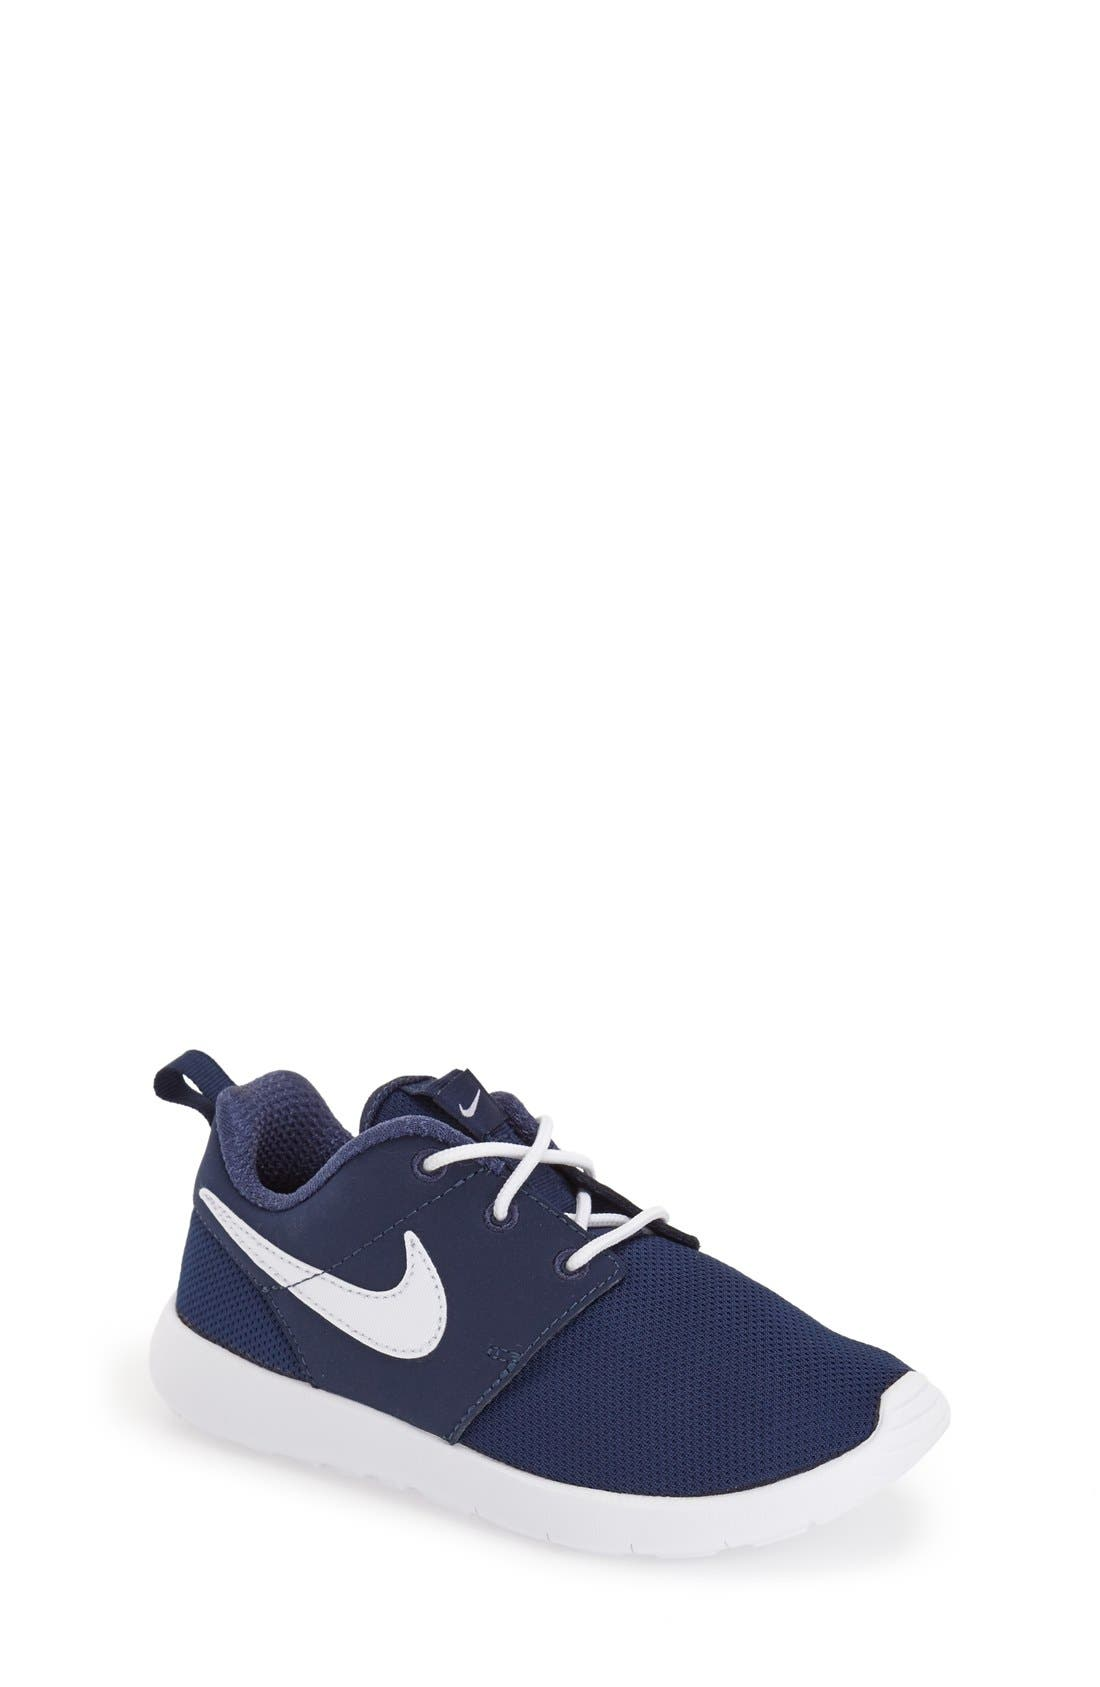 Roshe Run Sneaker,                             Main thumbnail 15, color,